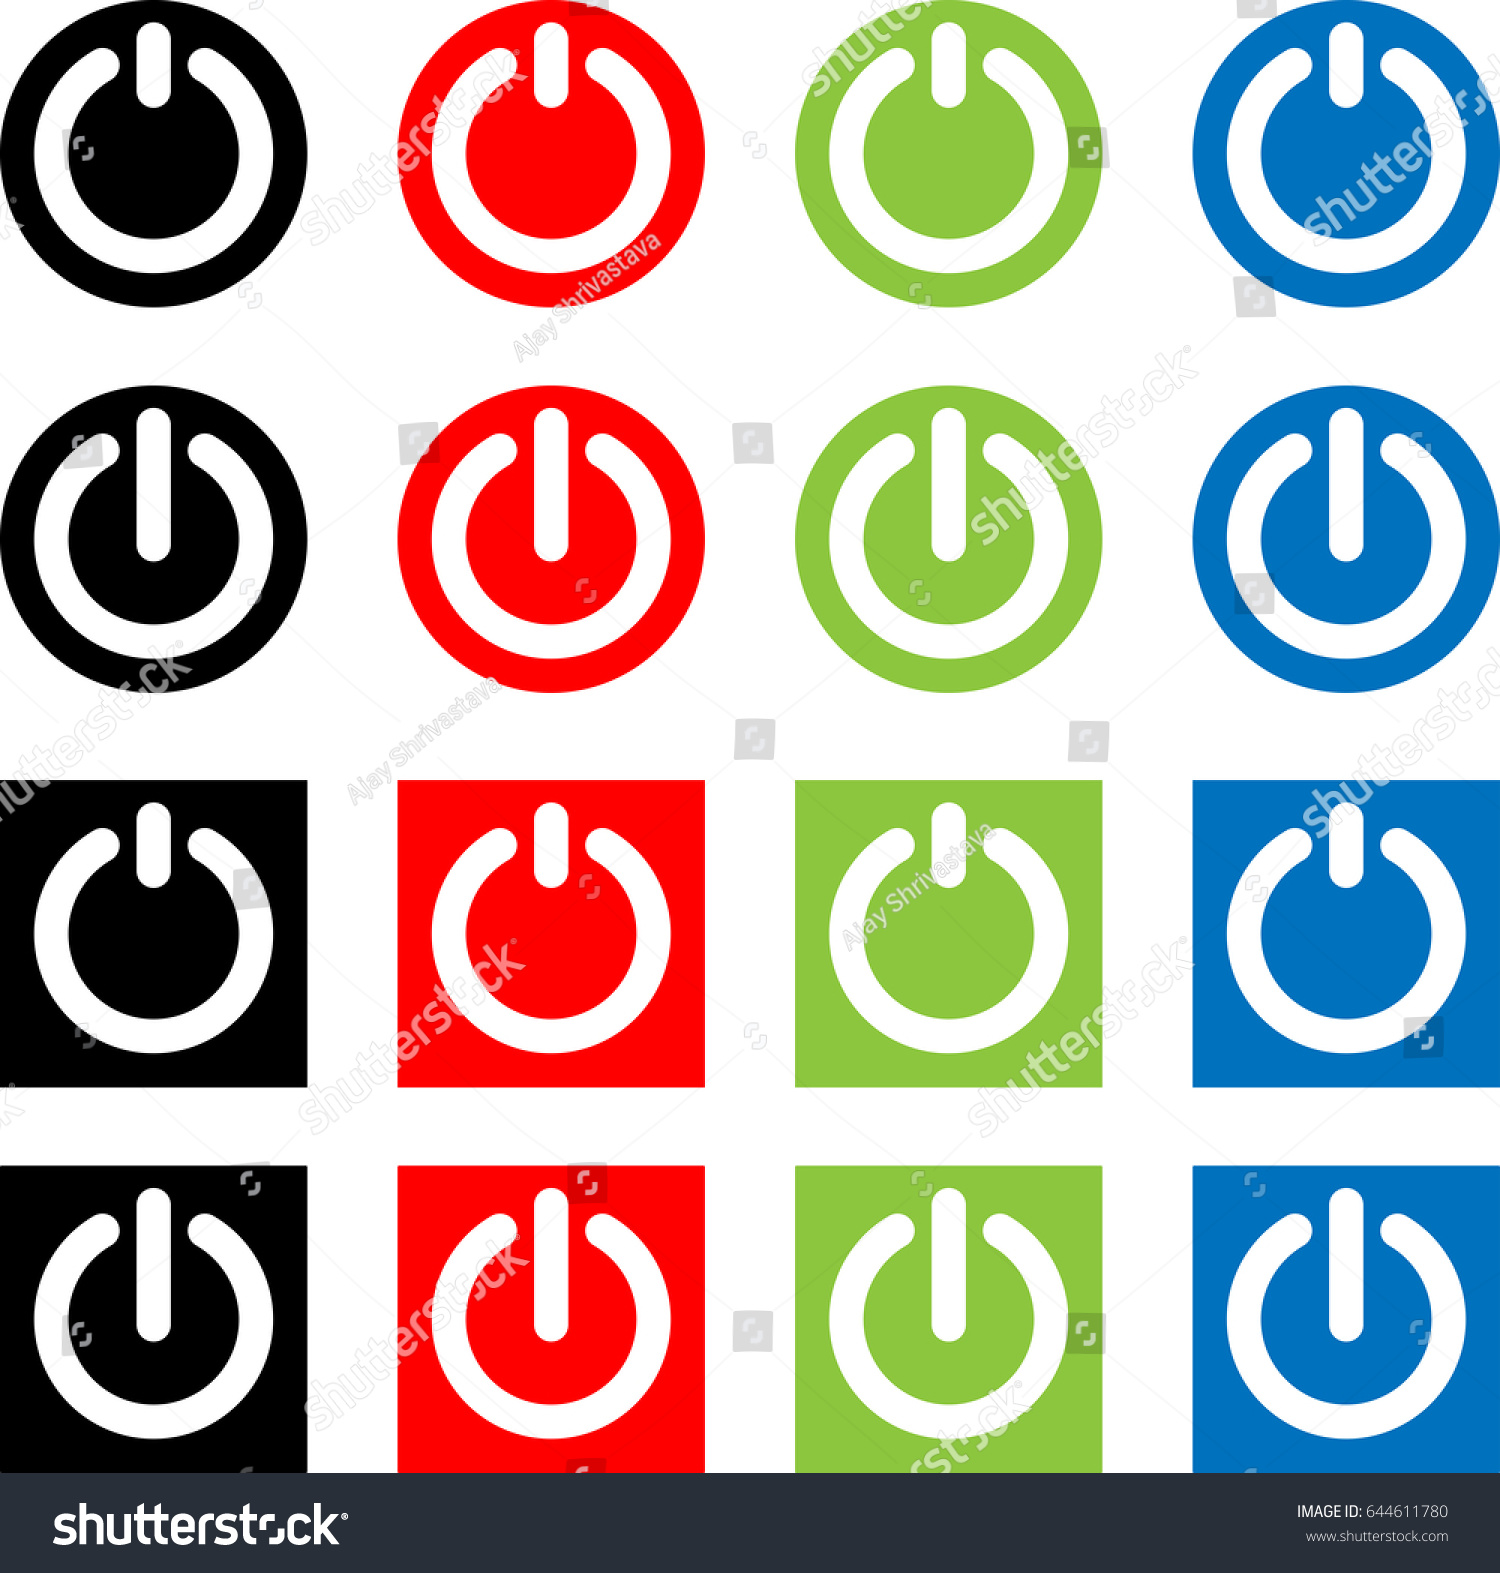 Power On Off Switch Icon Sign Stock Illustration 644611780